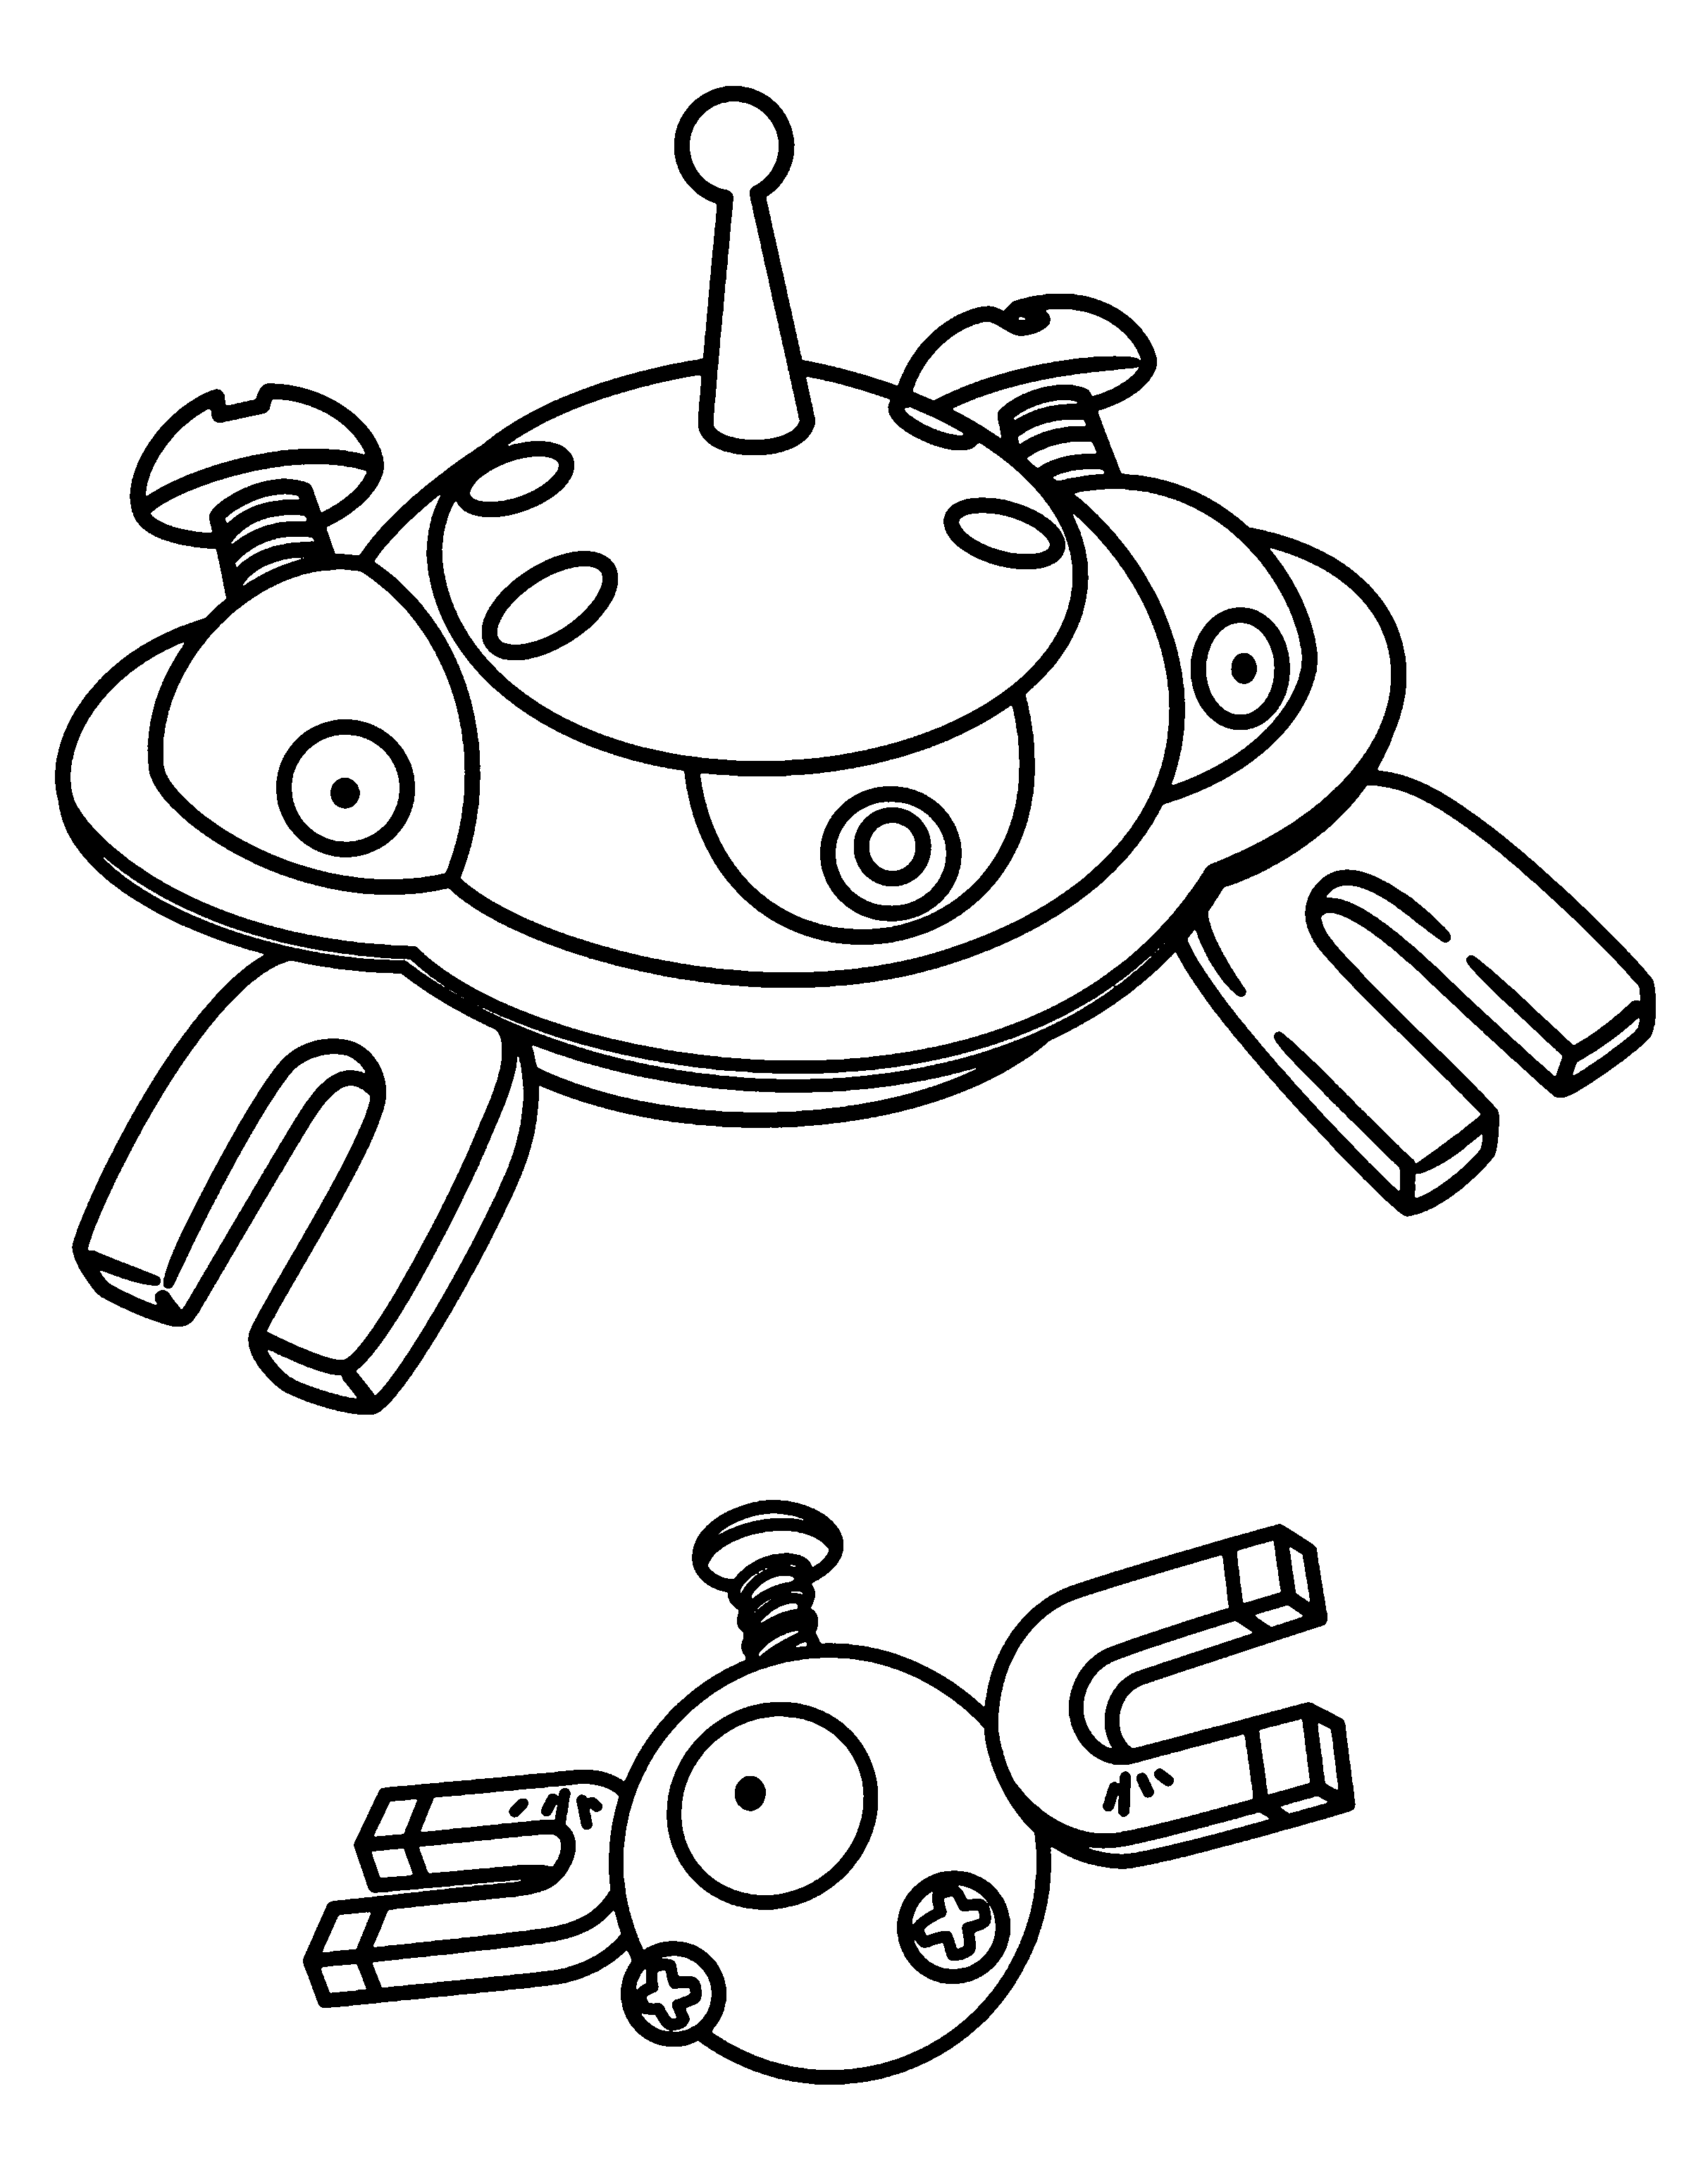 Pokemon coloring pages helioptile - Magneton Pokemon Coloring Pages Sketch Templates